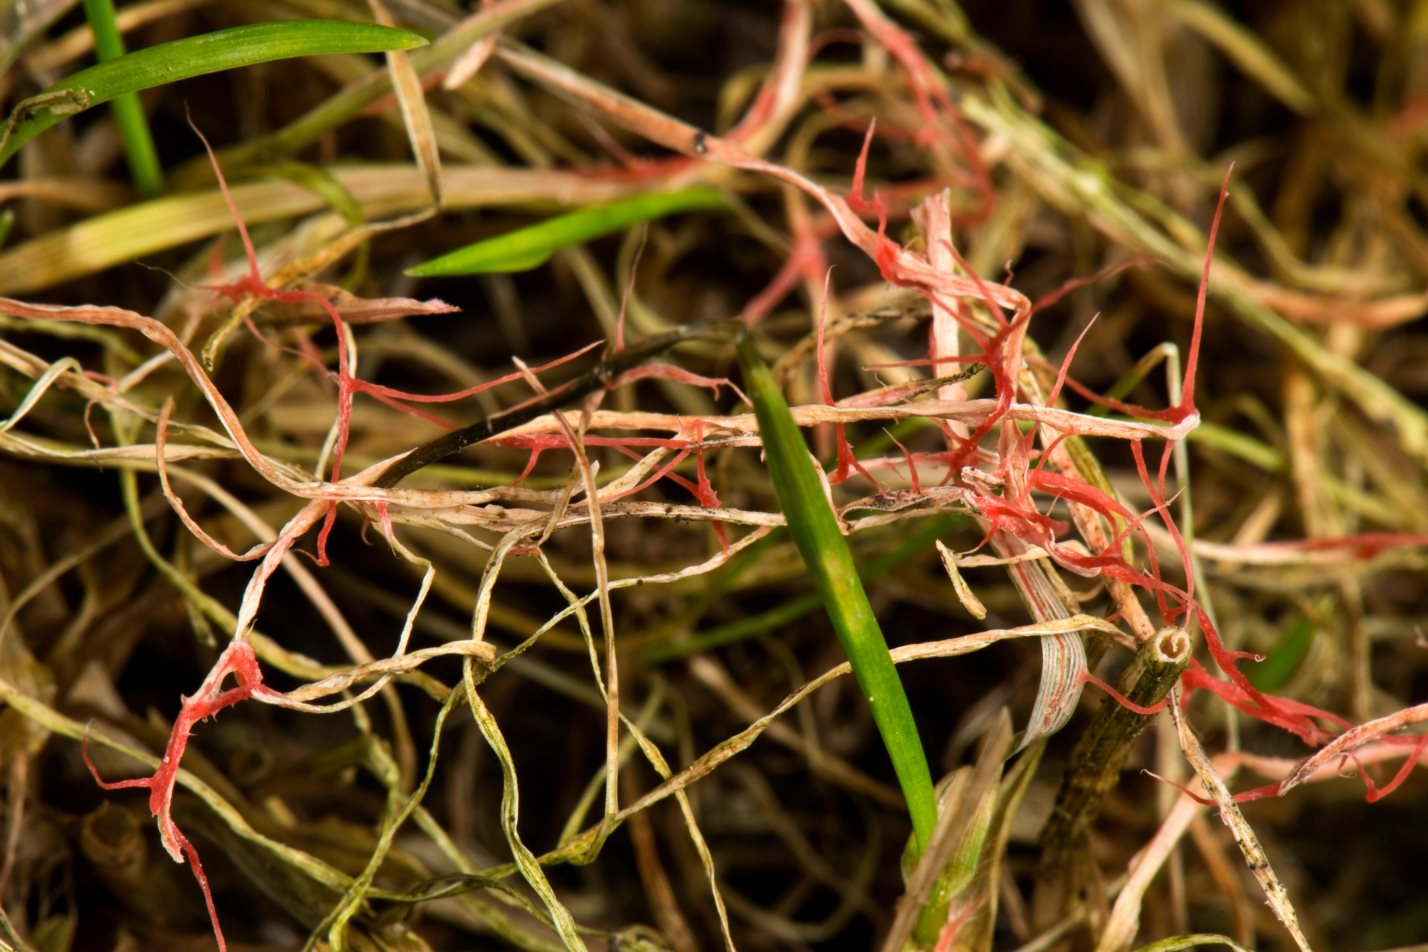 Red thread growing in grass